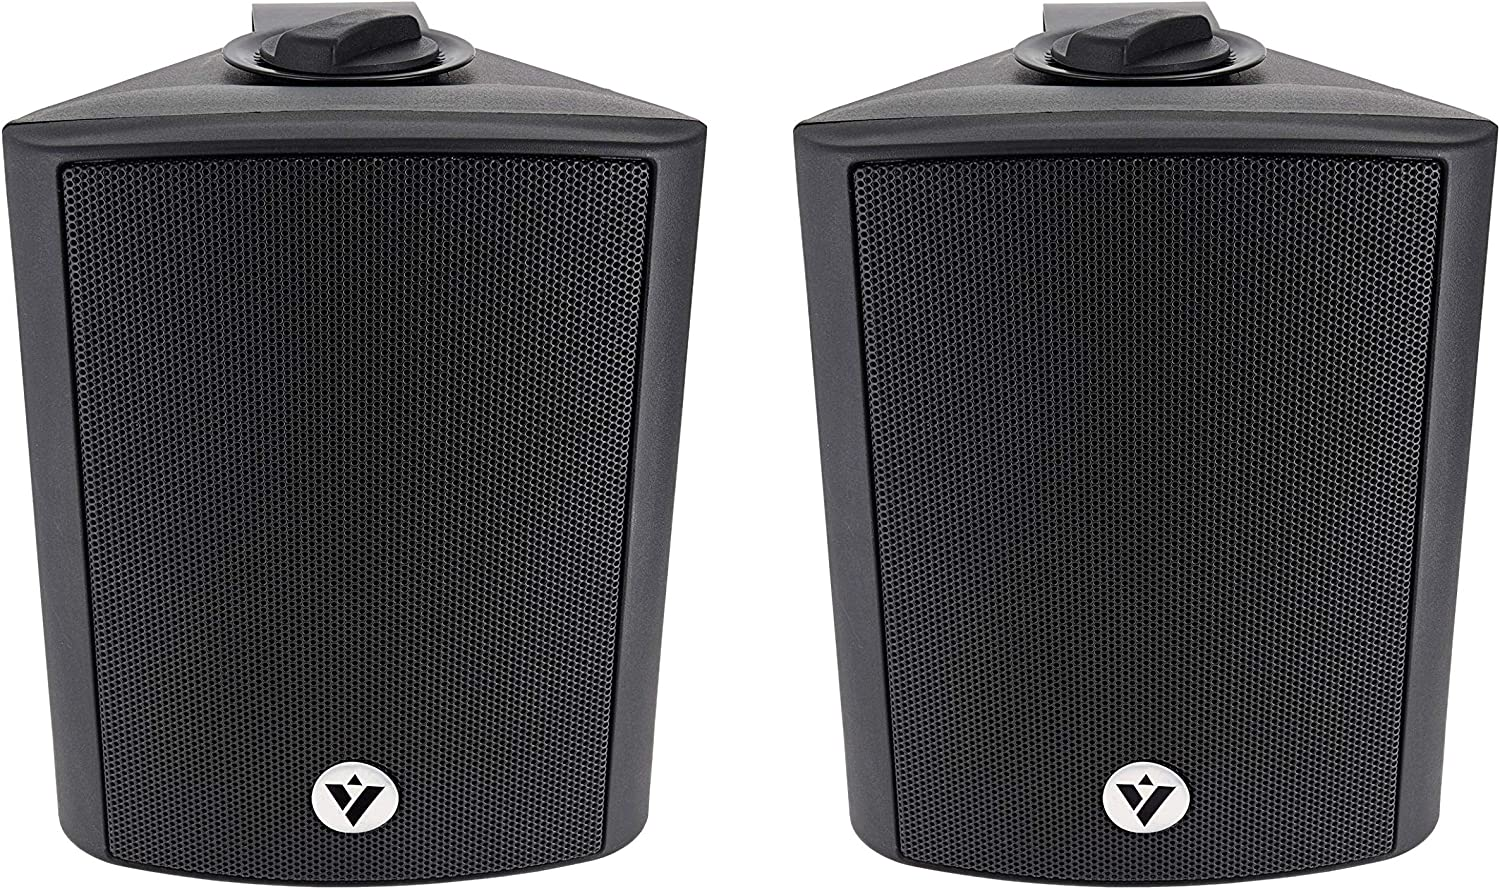 """Voyz 4"""" Black Architectural Speakers 70V 100V 8ohm Wall Speakers- Pair of 2 Indoor and Outdoor 2-Way Passive Loudspeakers 